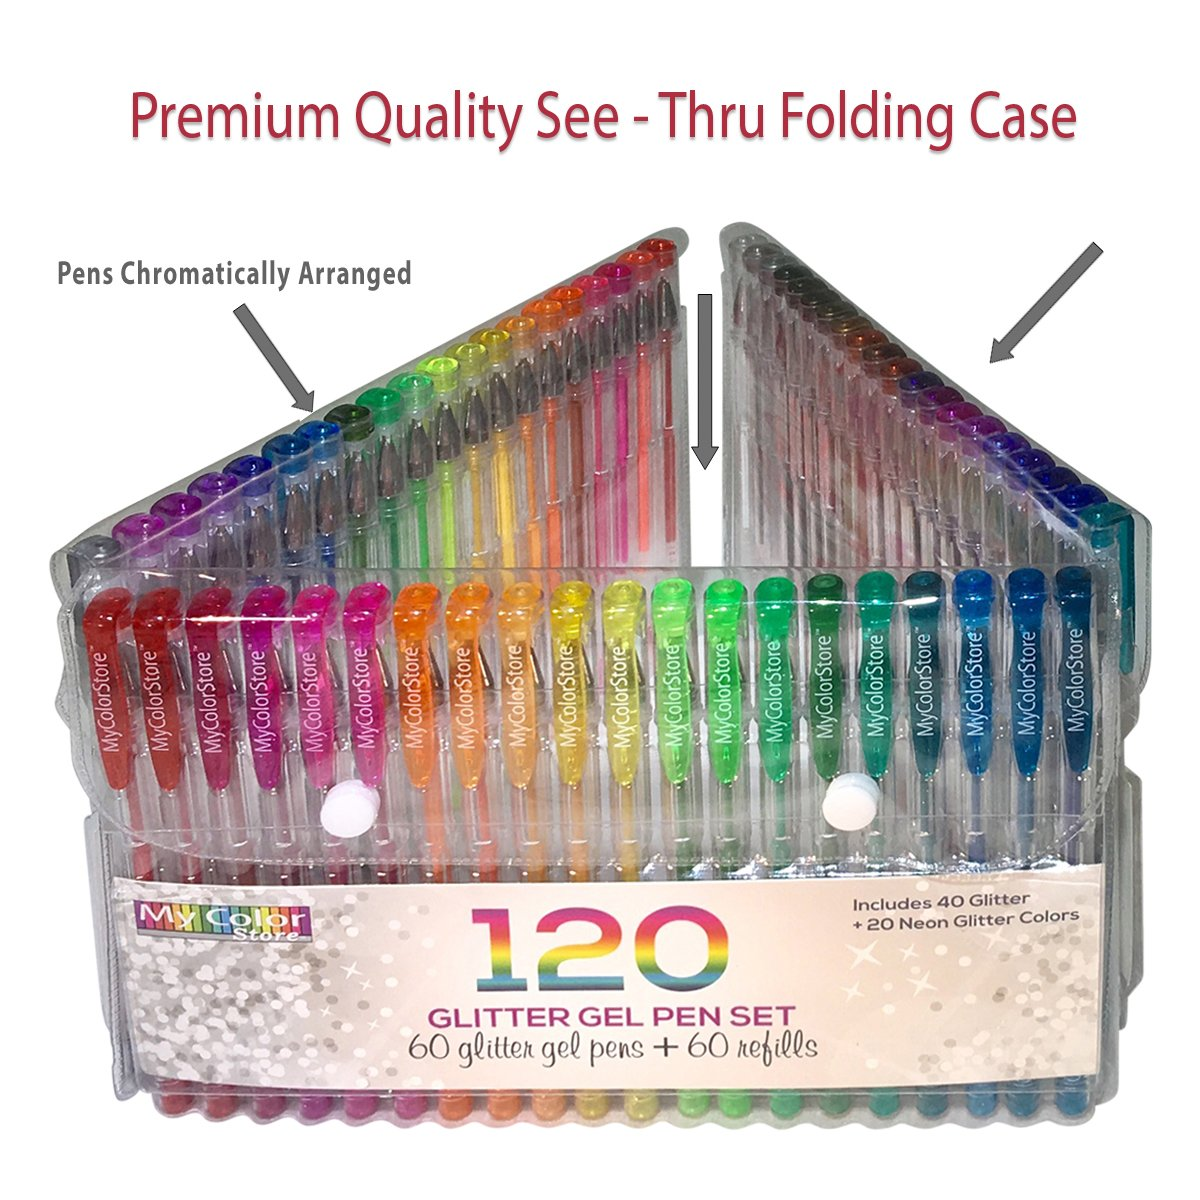 My Color Store 120 Glitter Gel Pens Set, 60 Glitter Pens + 60 Refills, Fold-able Case + Gift Box by Overseas Publishers Representatives (Image #3)